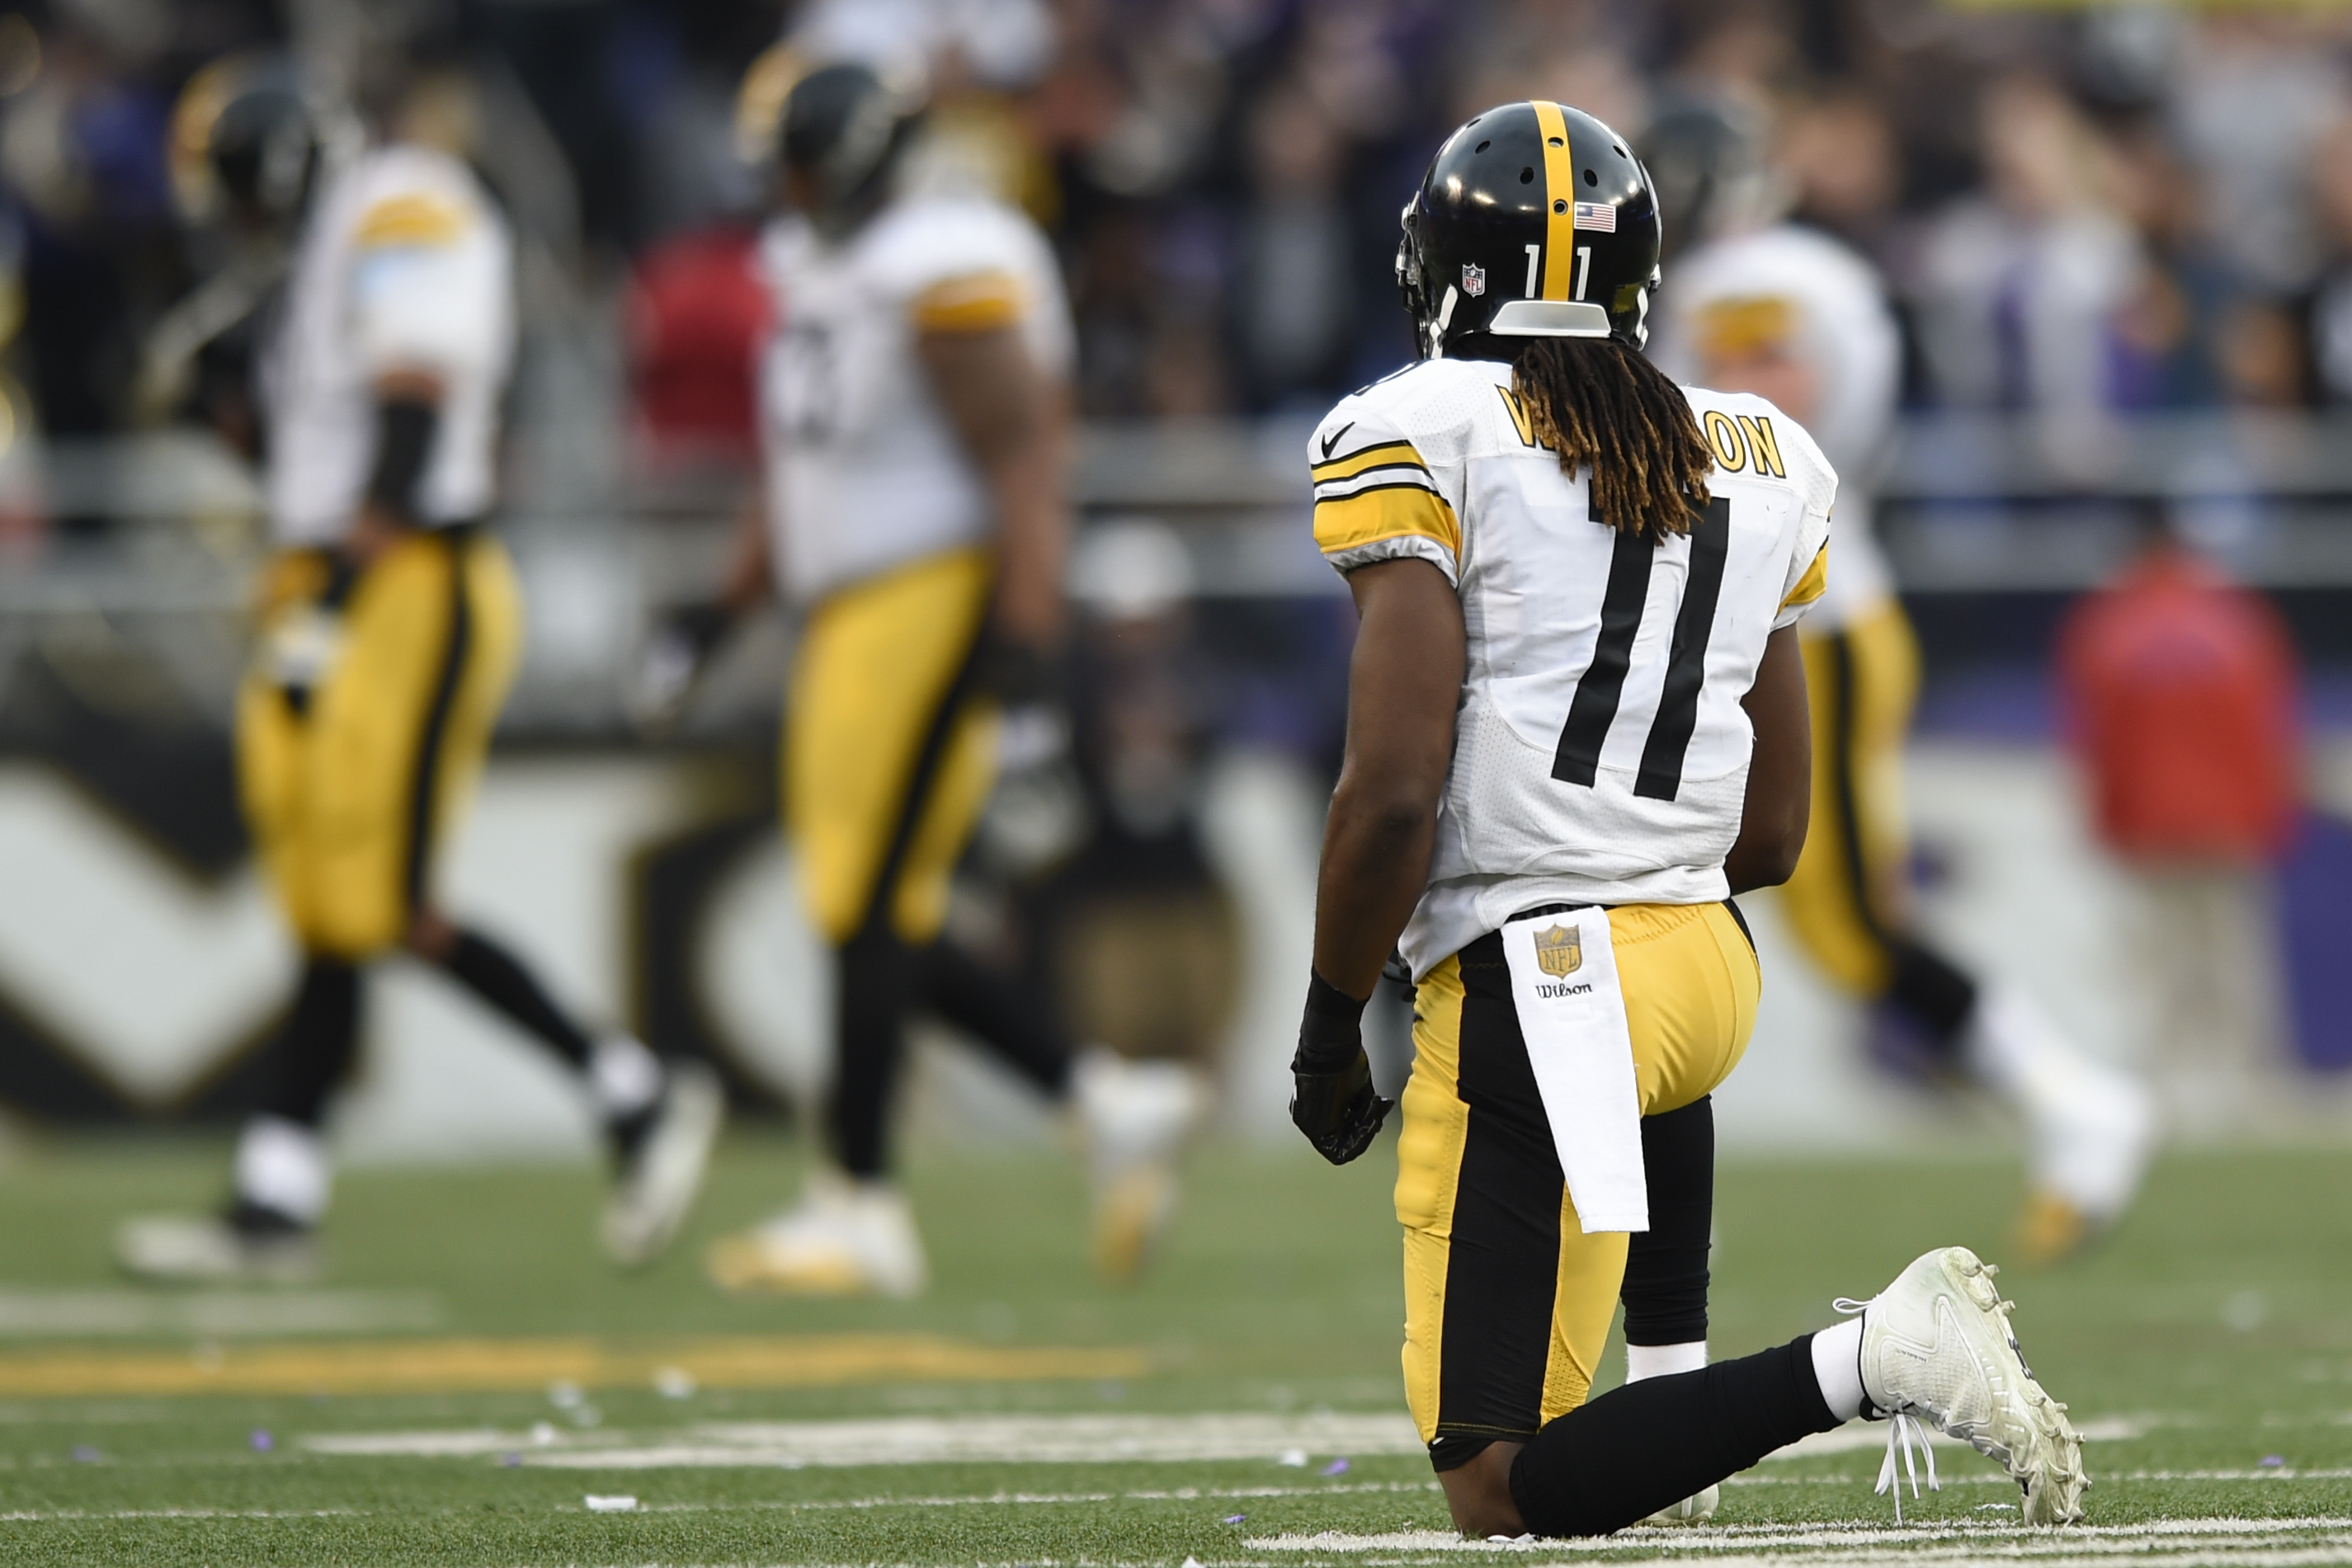 Pittsburgh Steelers wide receiver Markus Wheaton (11) kneels on the field after failing to catch a pass in the closing minutes of an NFL football game against the Baltimore Ravens in Baltimore, Sunday, Dec. 27, 2015. The Ravens defeated the Steelers 20-17